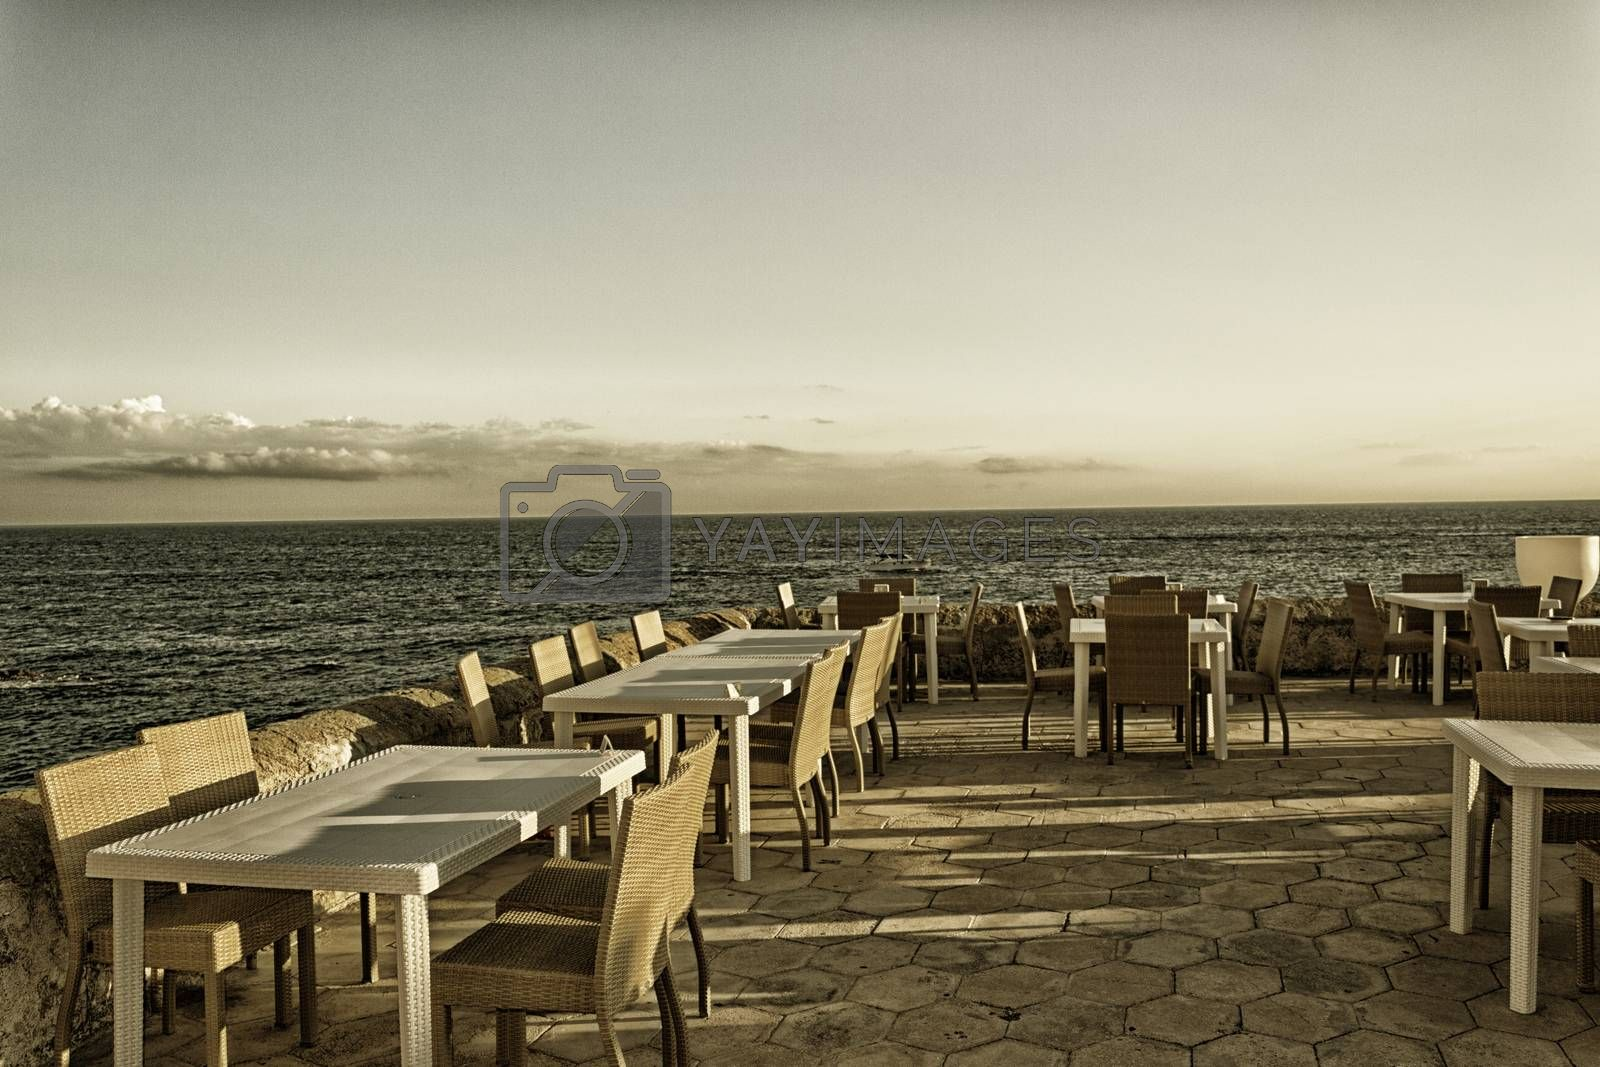 Restaurant on La Puritate (that is the purity) view: the beach of the old town of Gallipoli (Le) in the southern of Italy